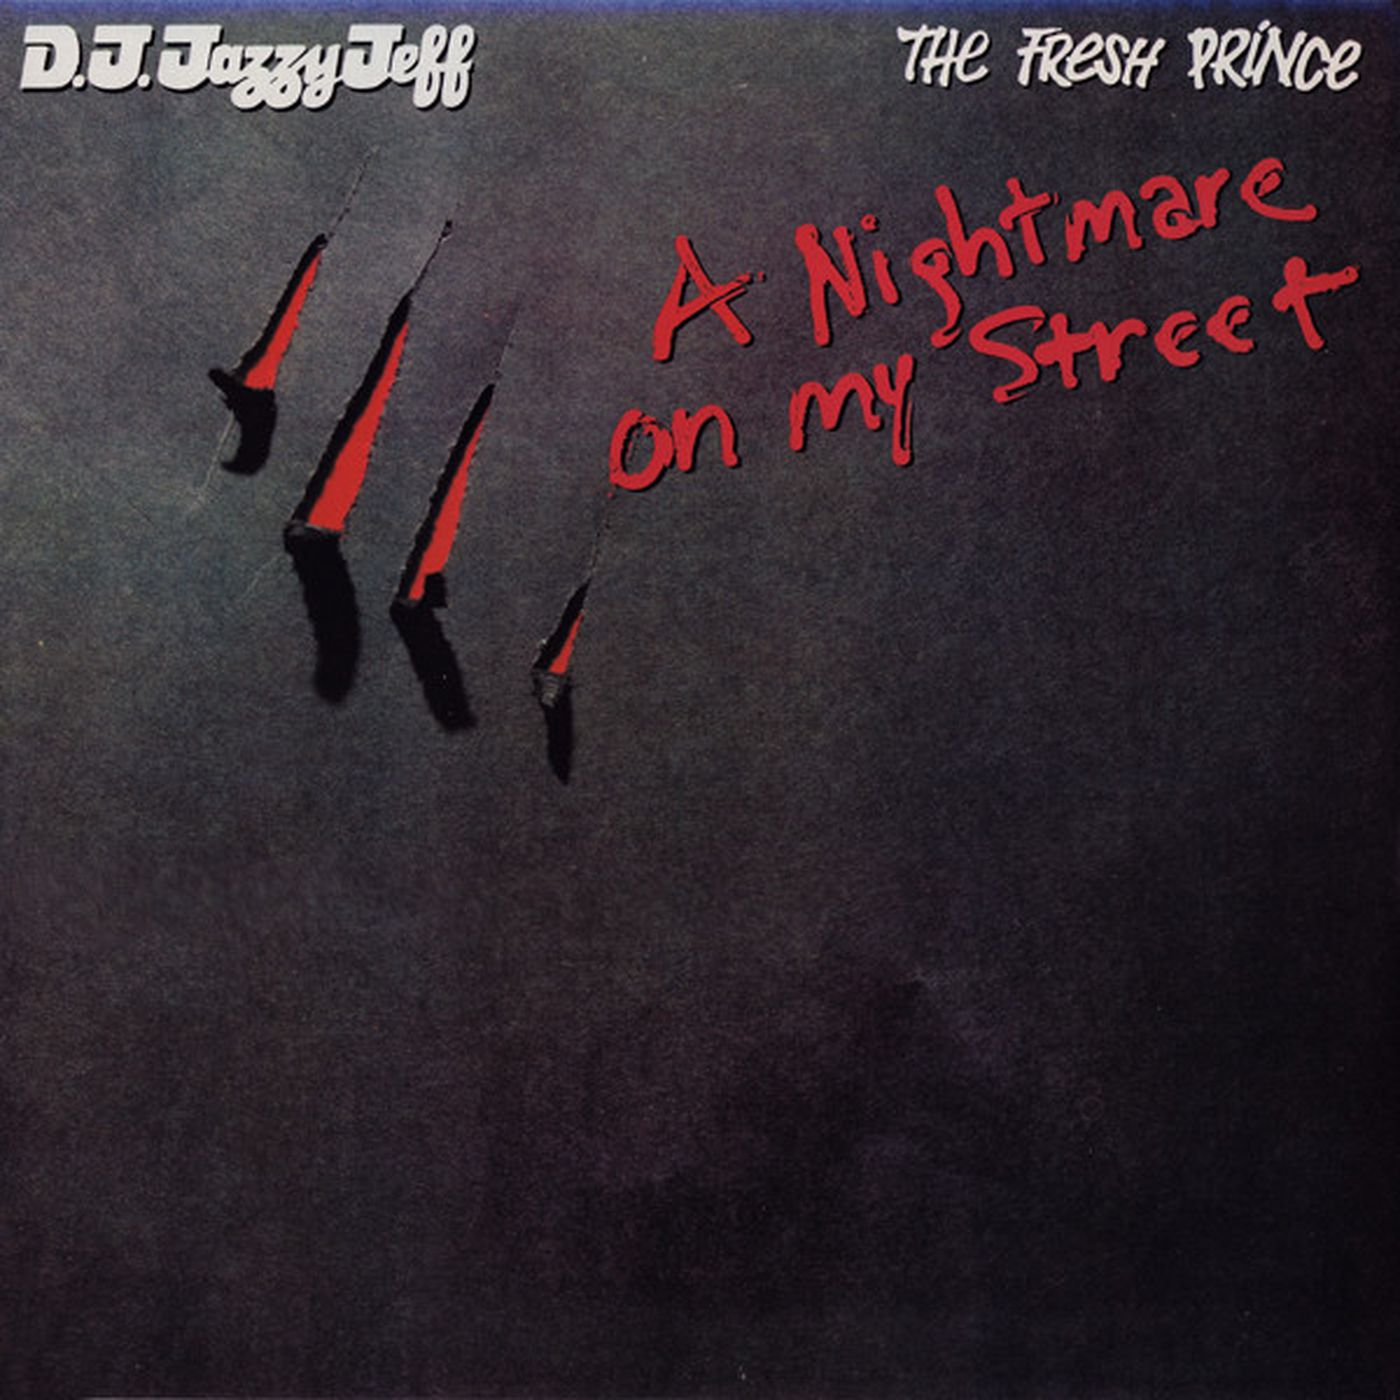 The album cover for the single